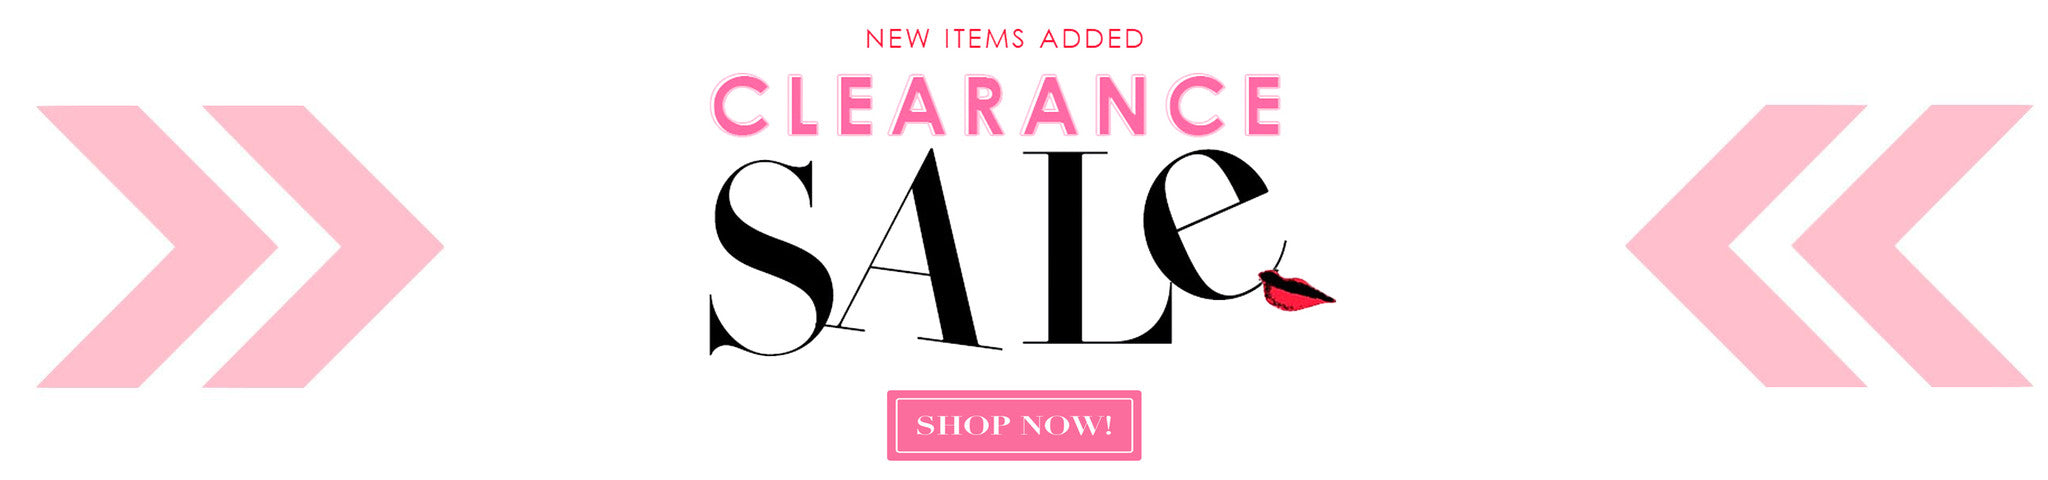 SALE ITEMS UP TO 75% OFF !